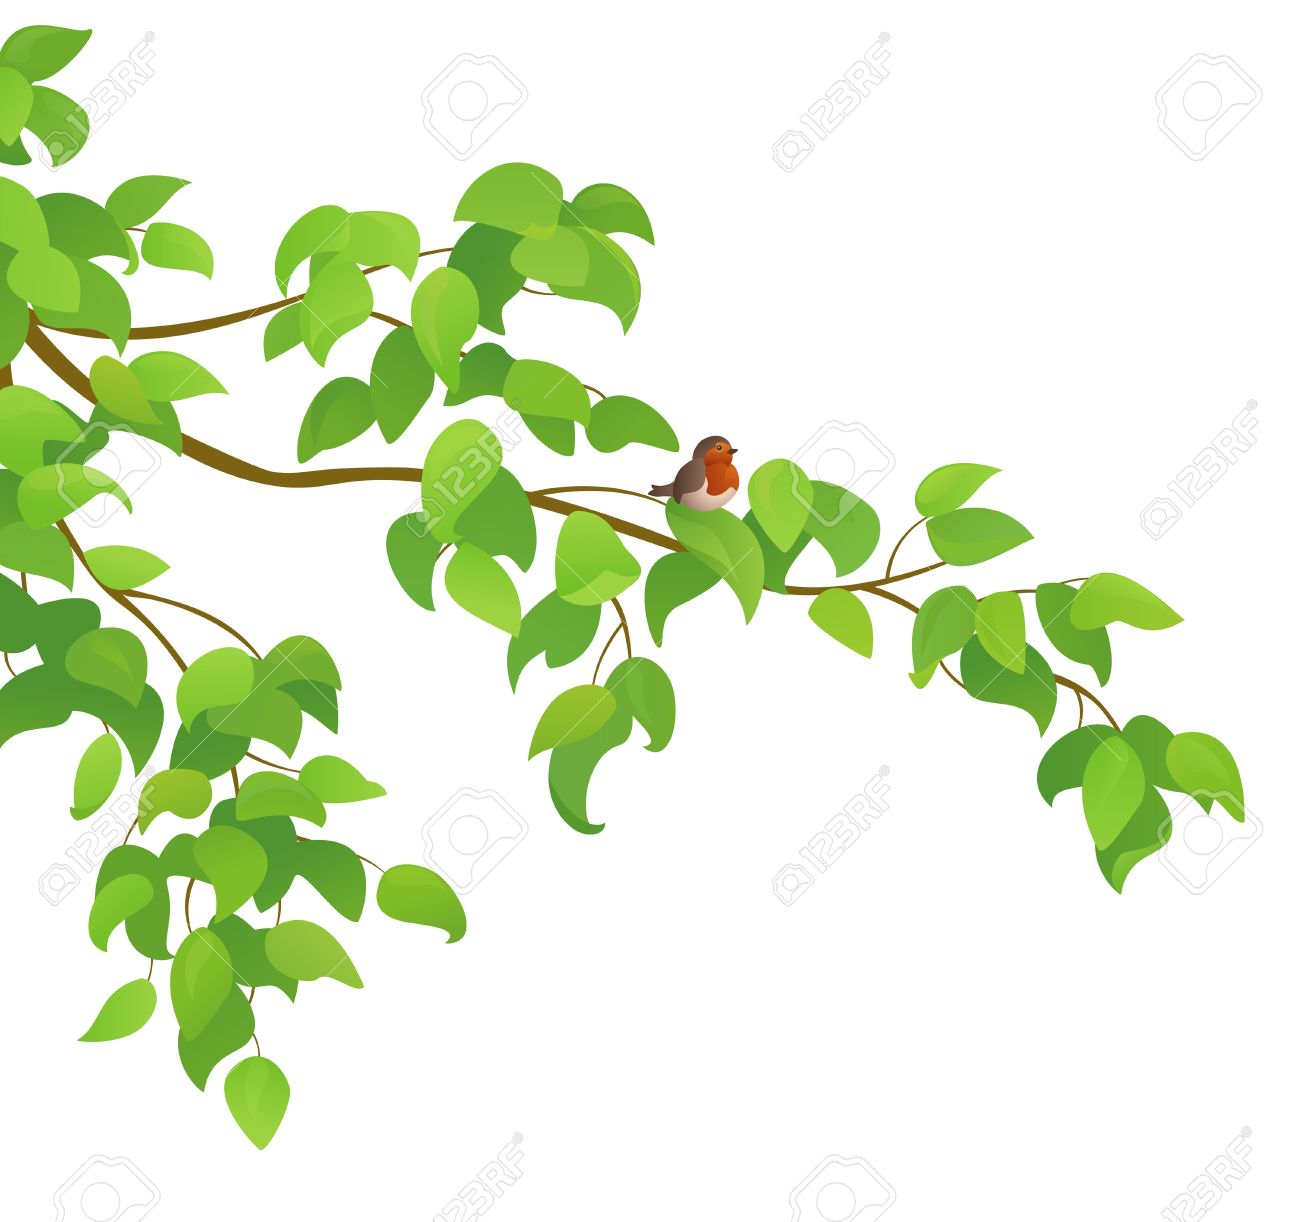 Vector illustration of a green tree branch with a bird Stock Vector - 20007674